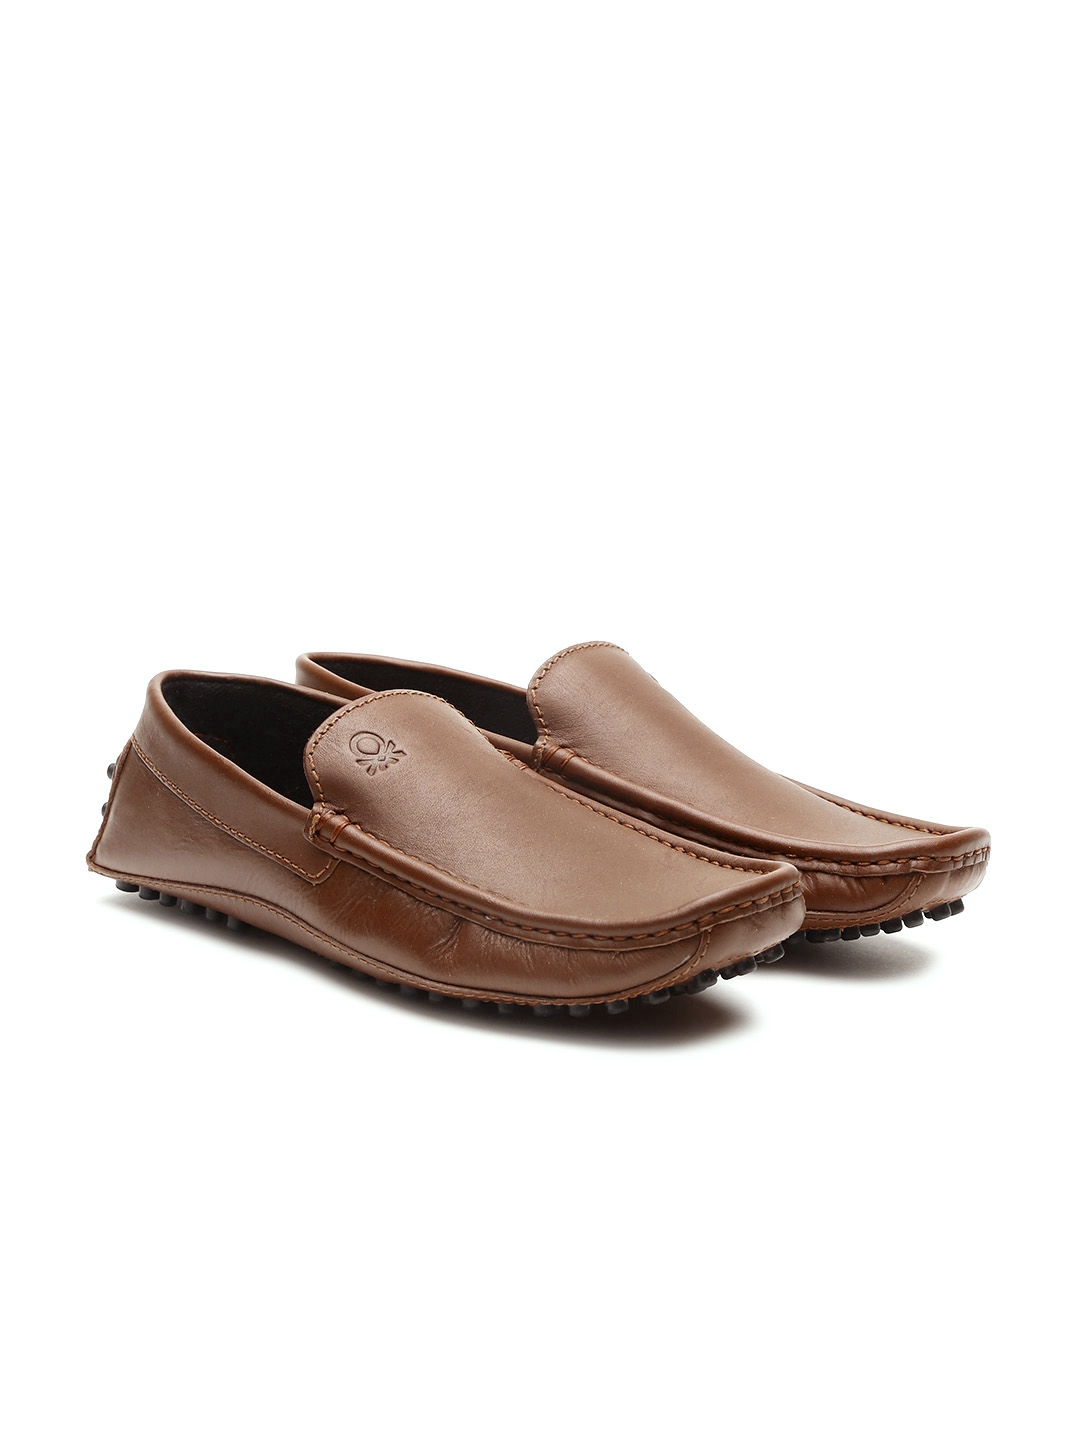 1224fcbbbd870 Buy United Colors Of Benetton Men Brown Genuine Leather Driving ...